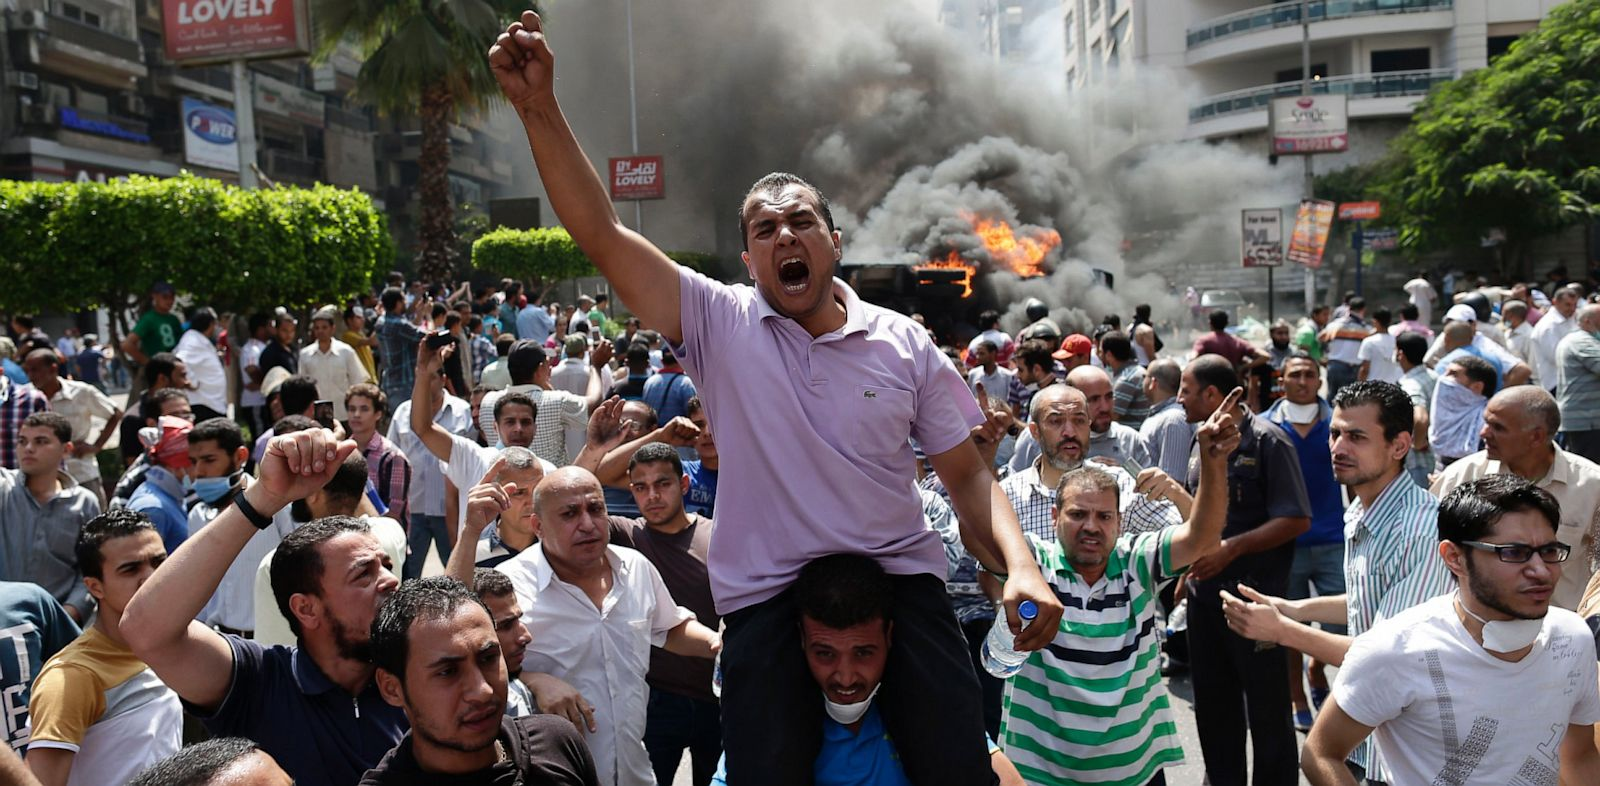 PHOTO: Supporters of Egypts ousted President Mohammed Morsi chant slogans against Egyptian Defense Minister Gen. Abdel-Fattah el-Sissi during clashes with Egyptian security forces in Cairos Mohandessin neighborhood, Egypt, Wednesday, Aug. 14, 2013.